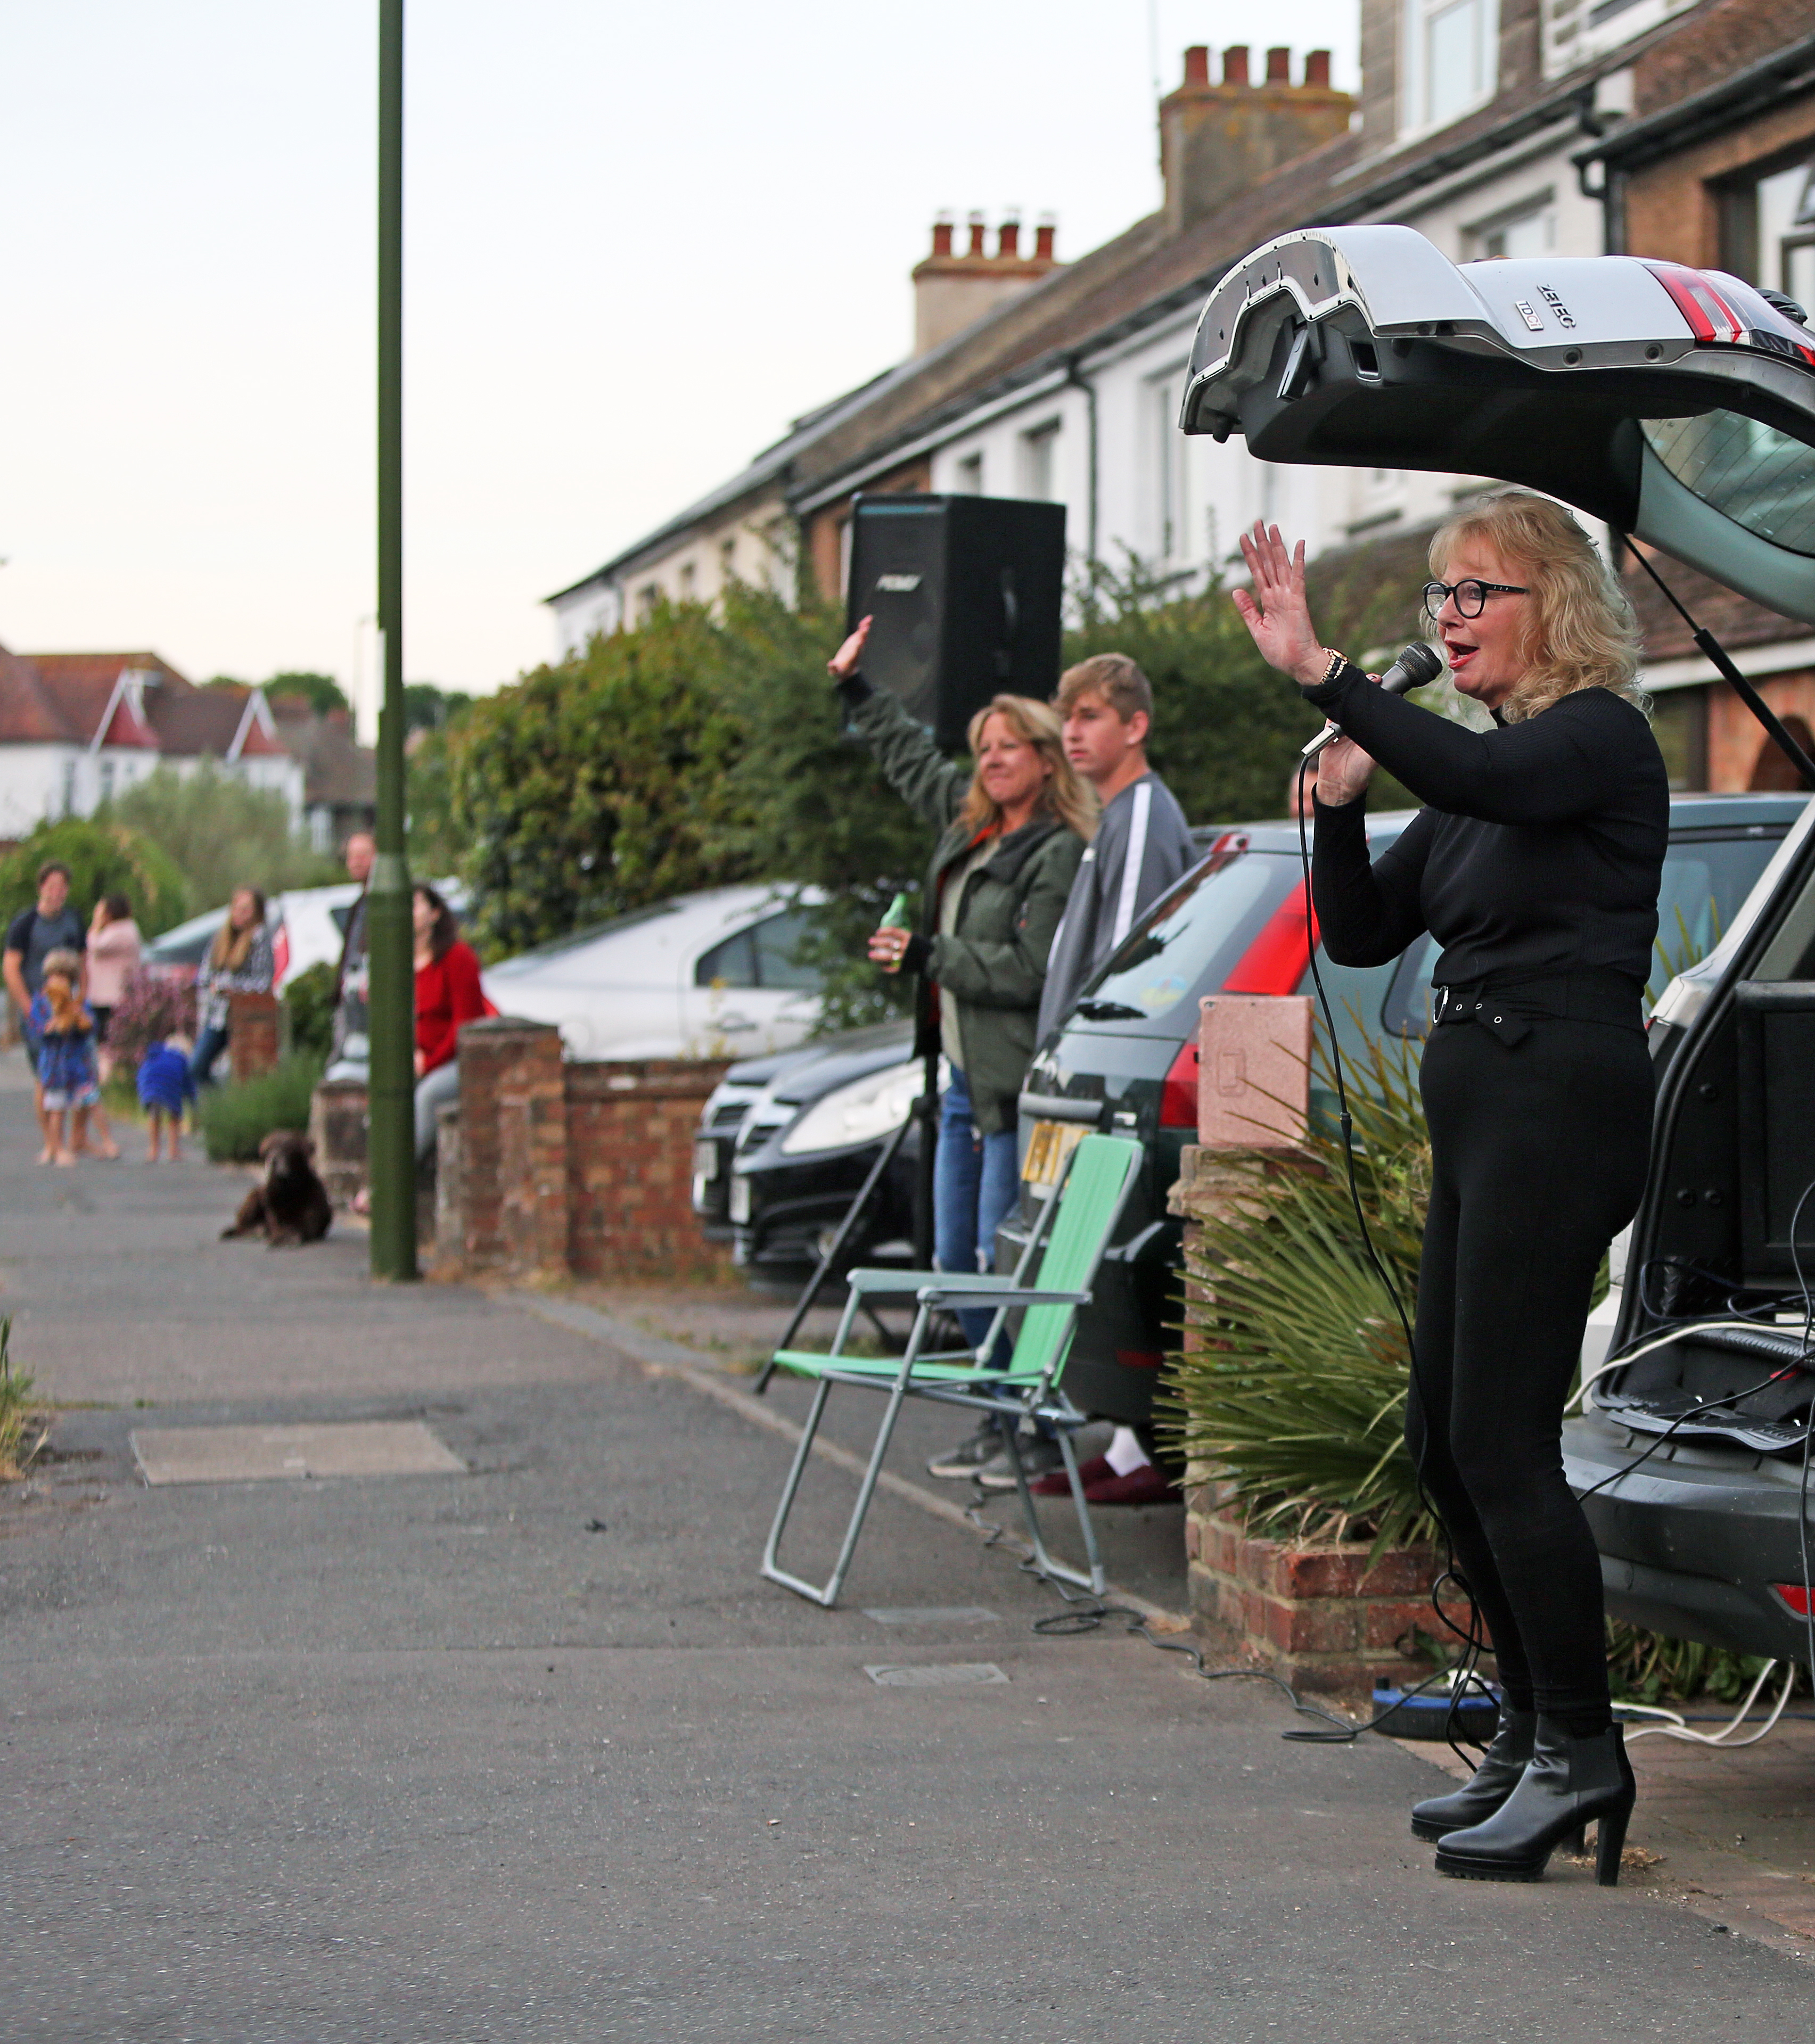 A woman, Tina Jane from Shoreham, sings songs out the back of her car to entertain the people that live on her street after the Clap for Carers, as the UK continues to ease out of lockdown to curb the spread of coronavirus.